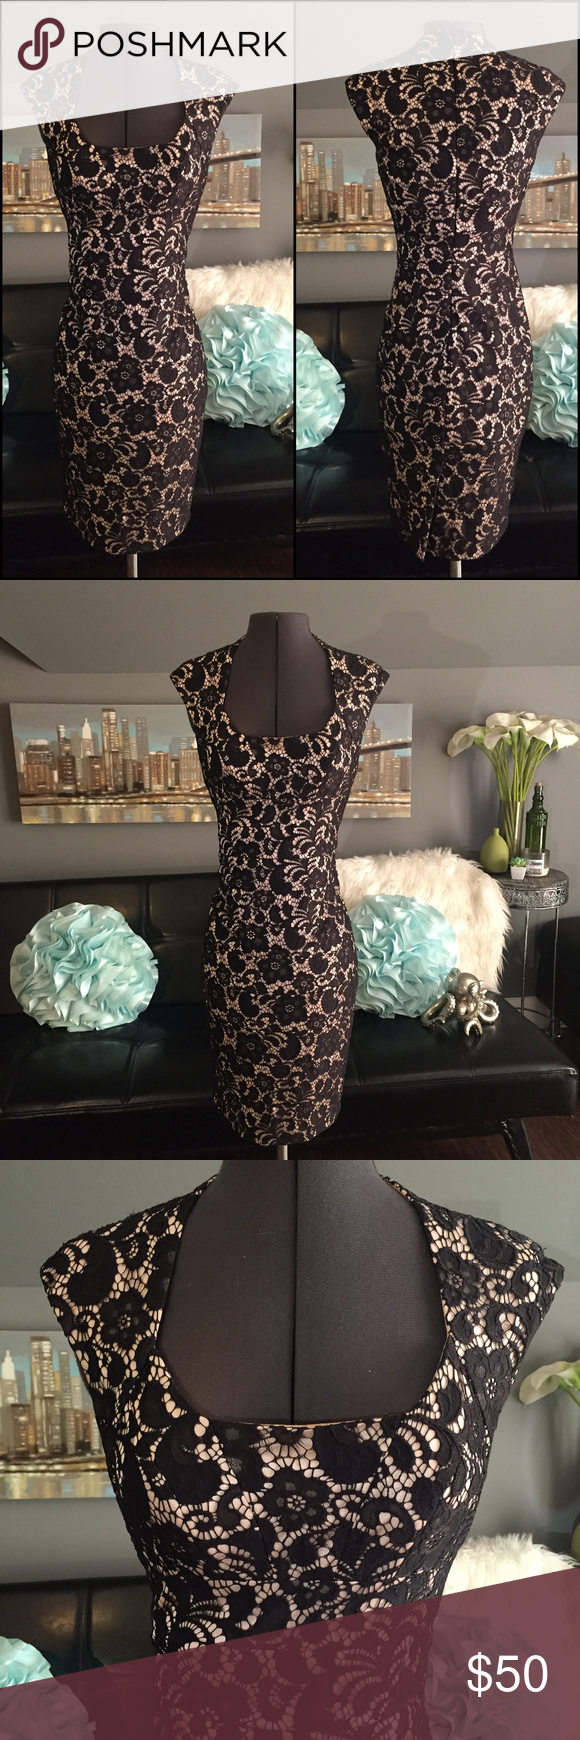 Jax Black Lace Over Nude Classy Cocktail Dress   Classy cocktail ...